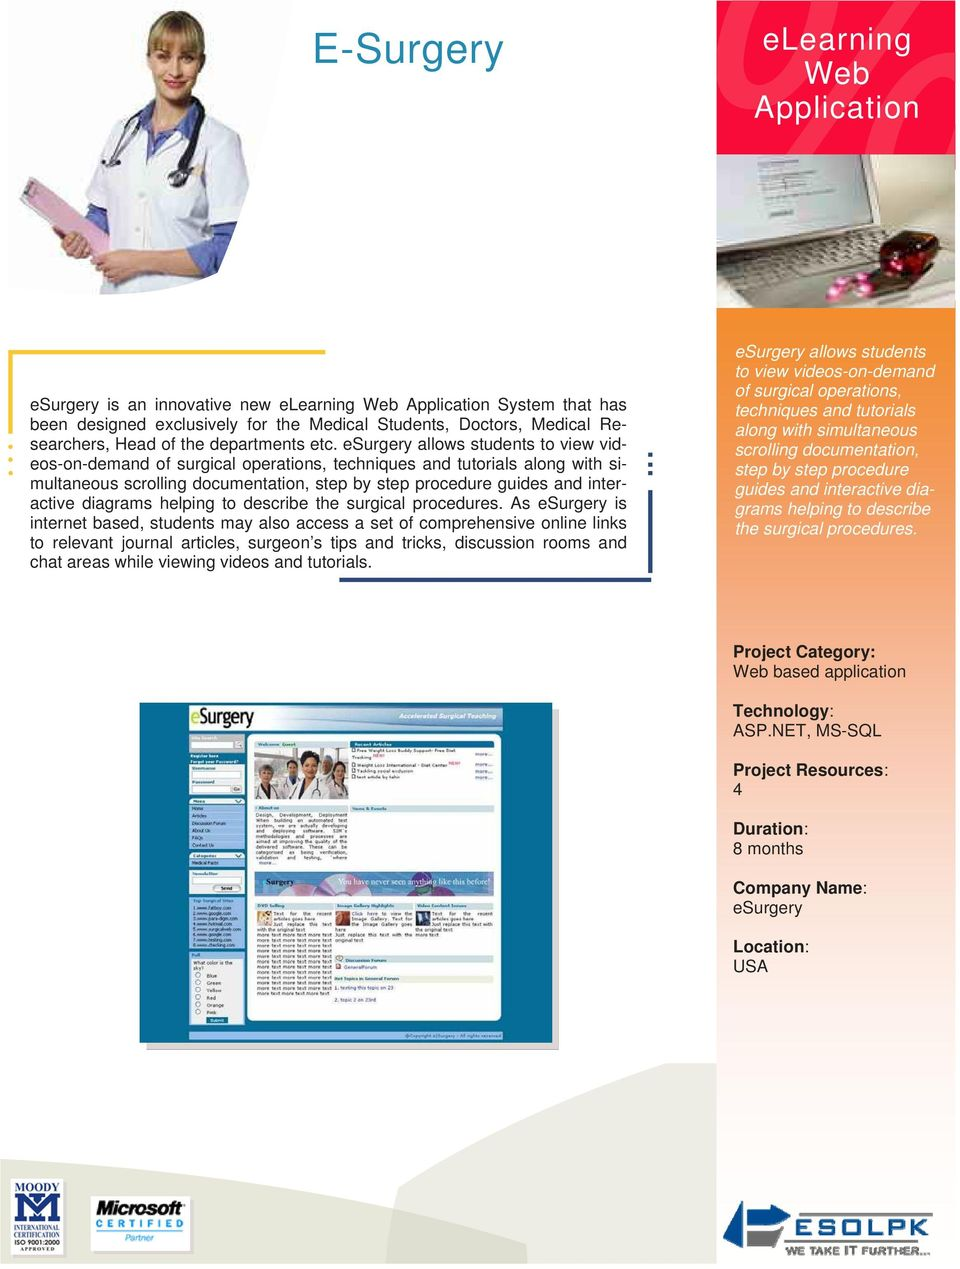 esurgery allows students to view videos-on-demand of surgical operations, techniques and tutorials along with simultaneous scrolling documentation, step by step procedure guides and interactive